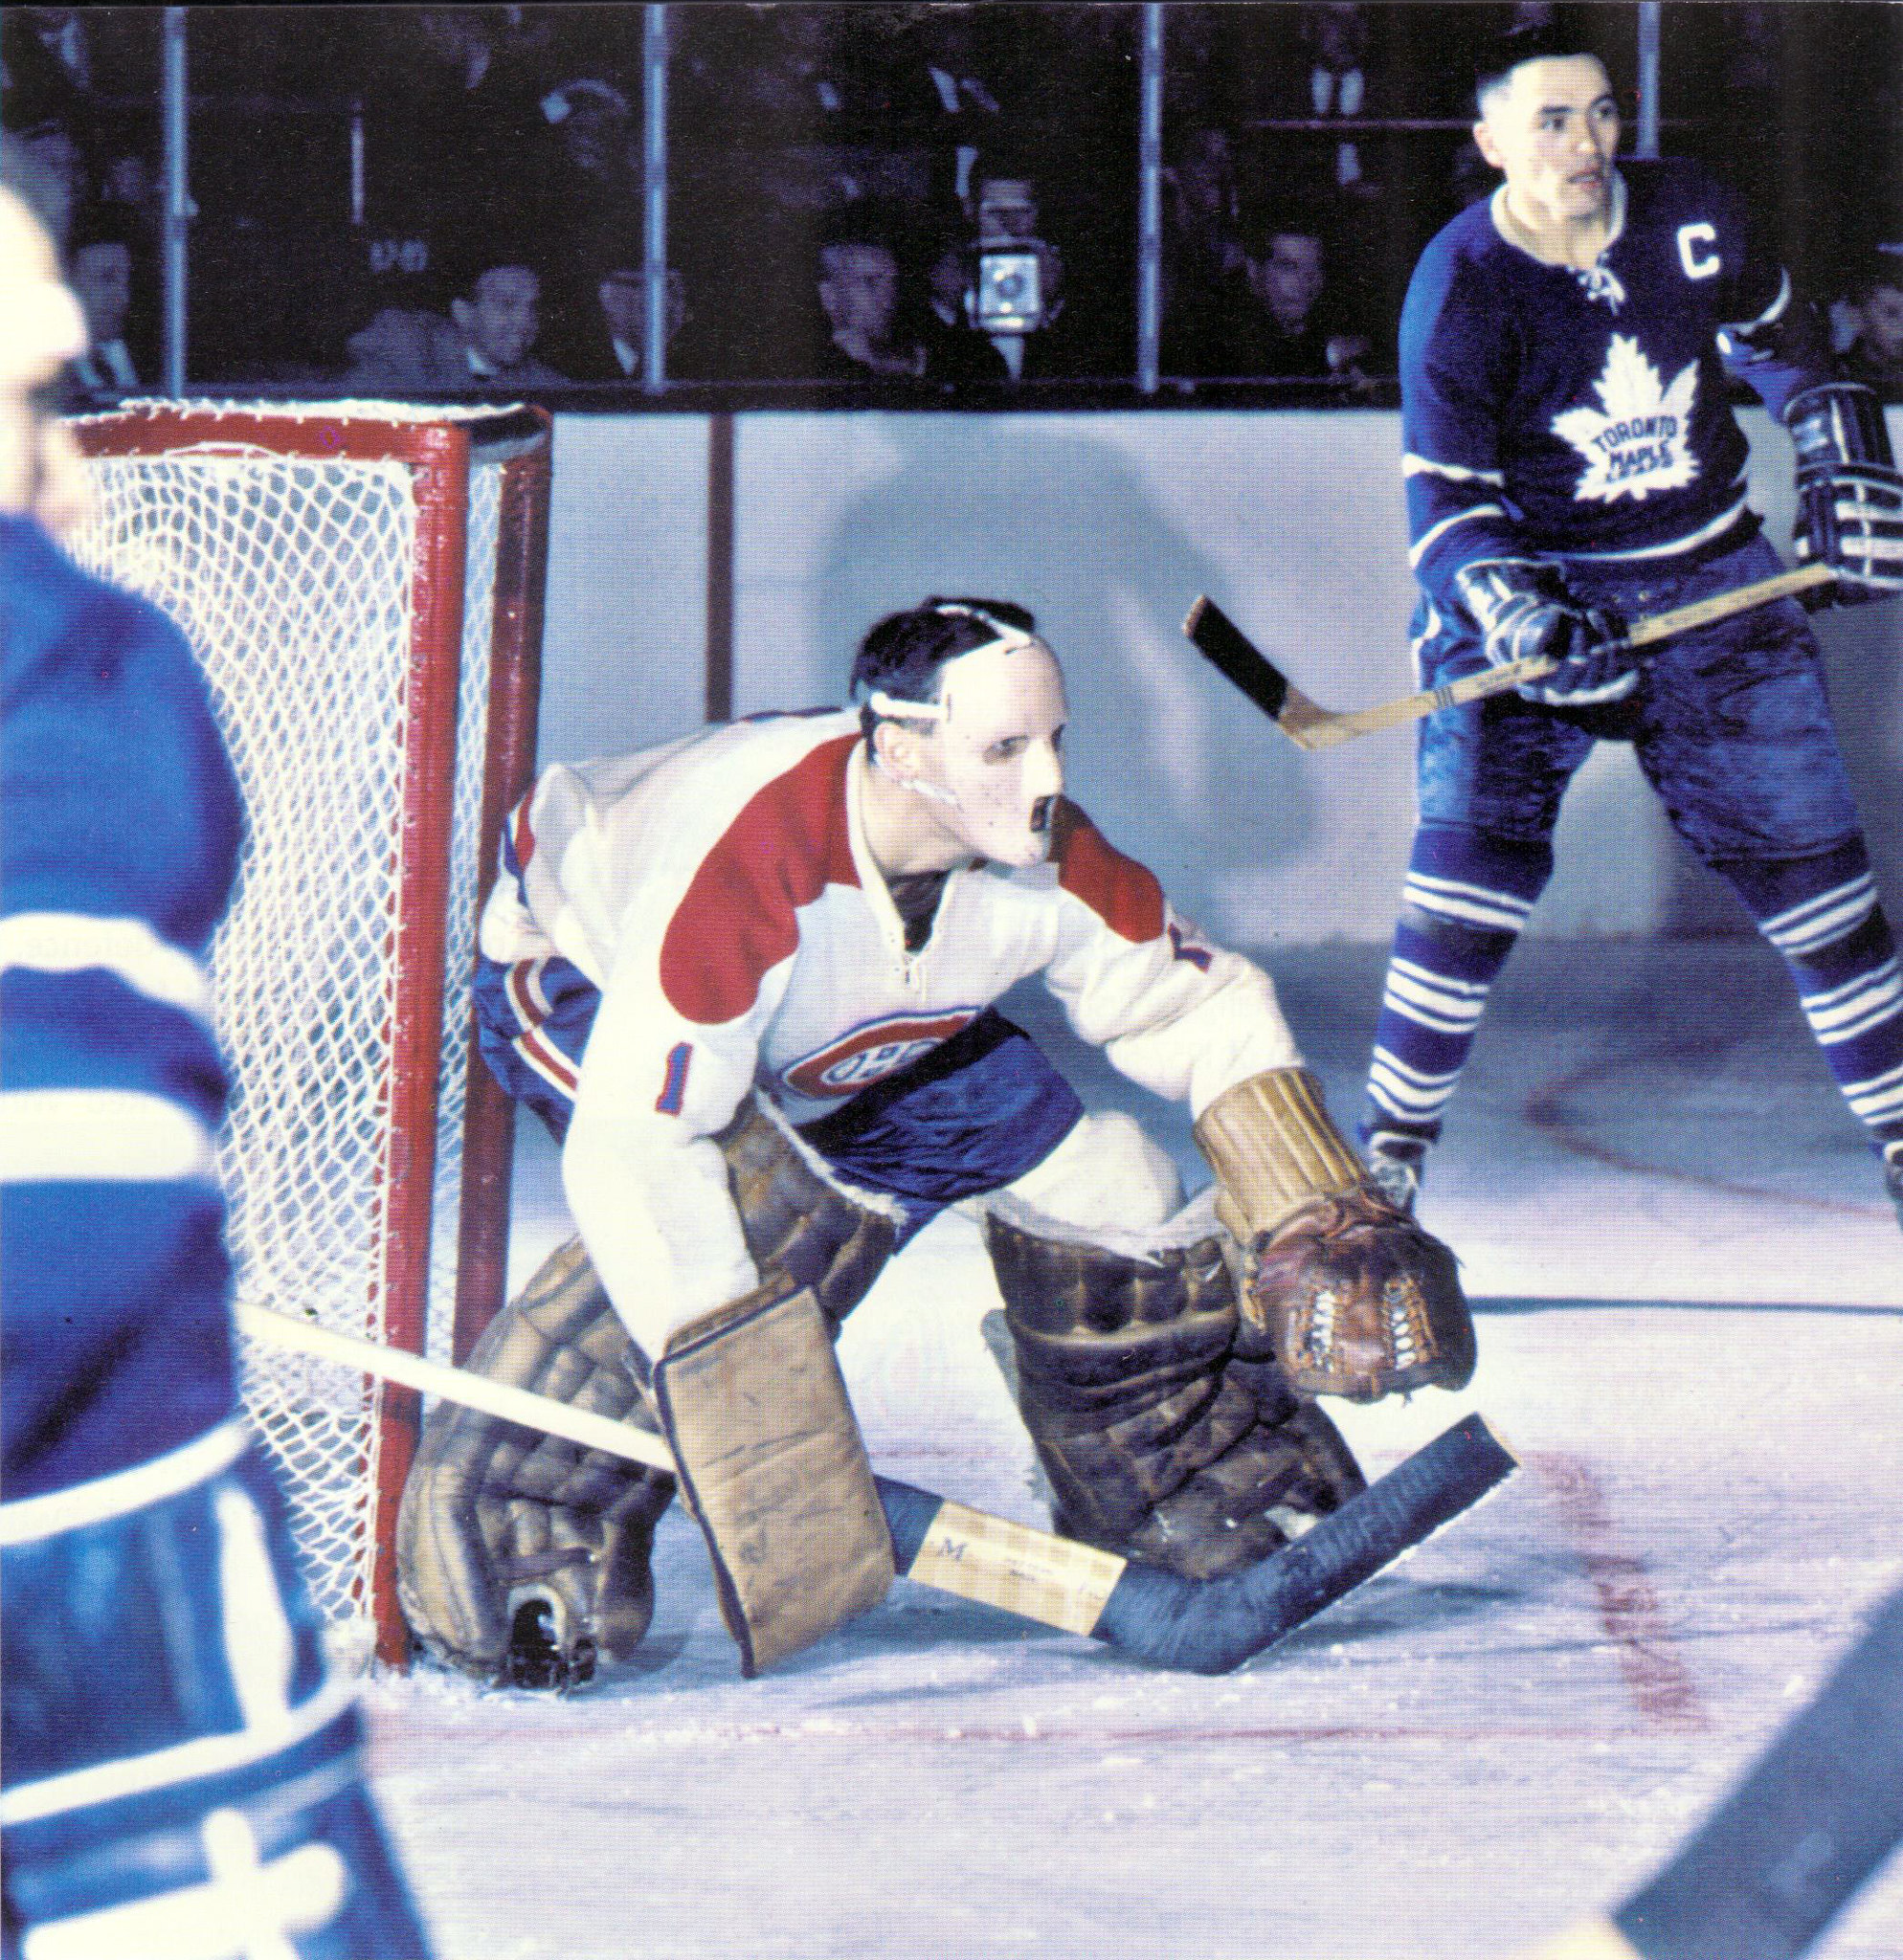 Jacques Plante, early 1960s